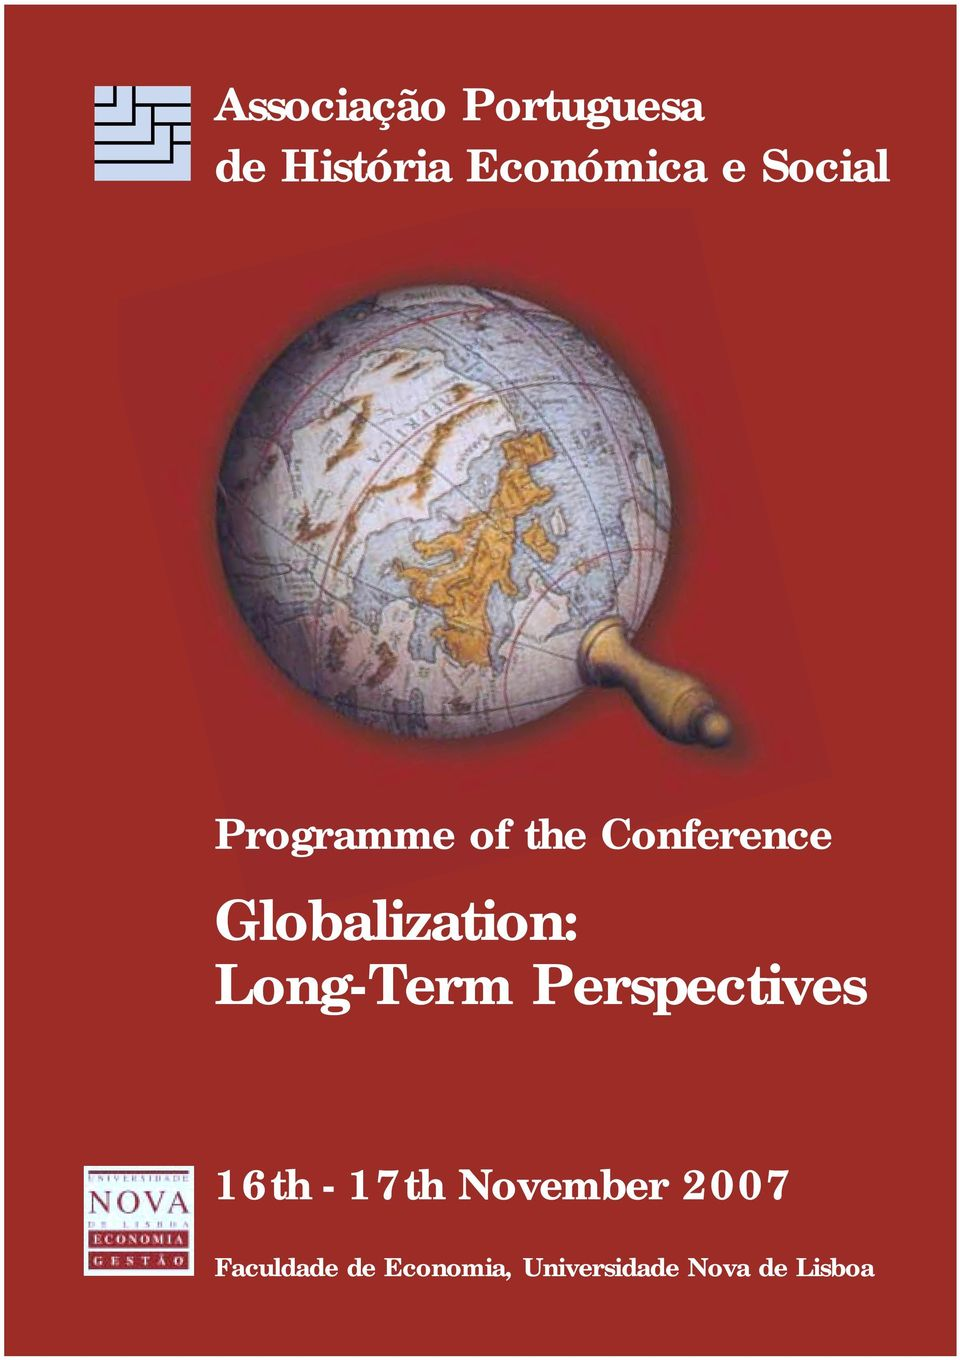 Globalization: Long-Term Perspectives 16th -